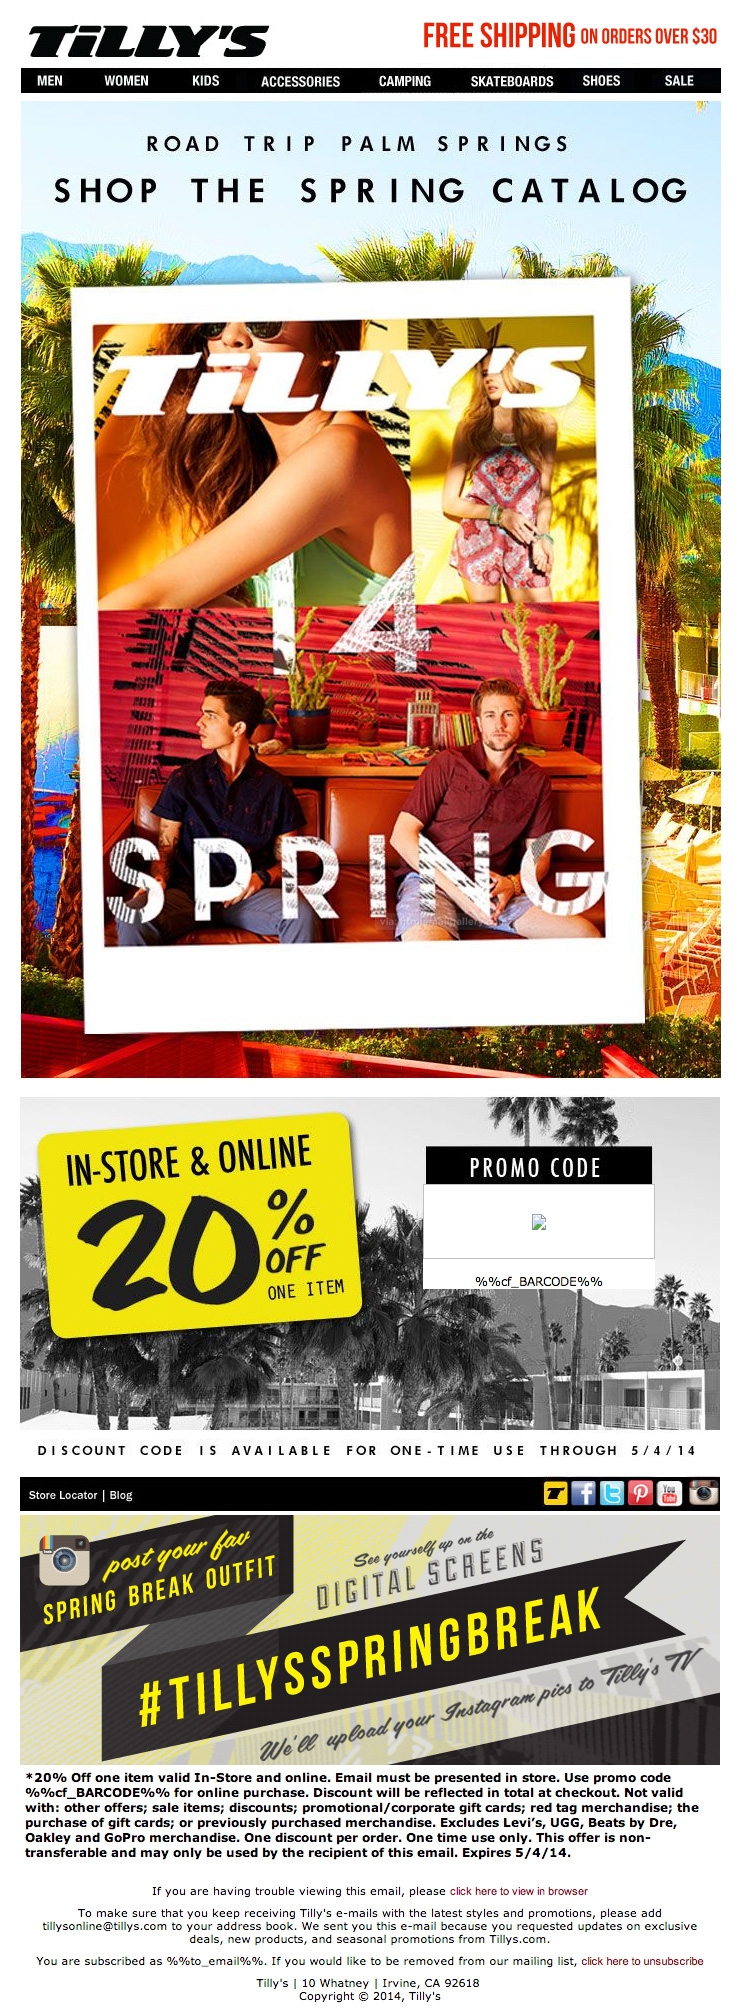 Tillys Spring Break Offers email